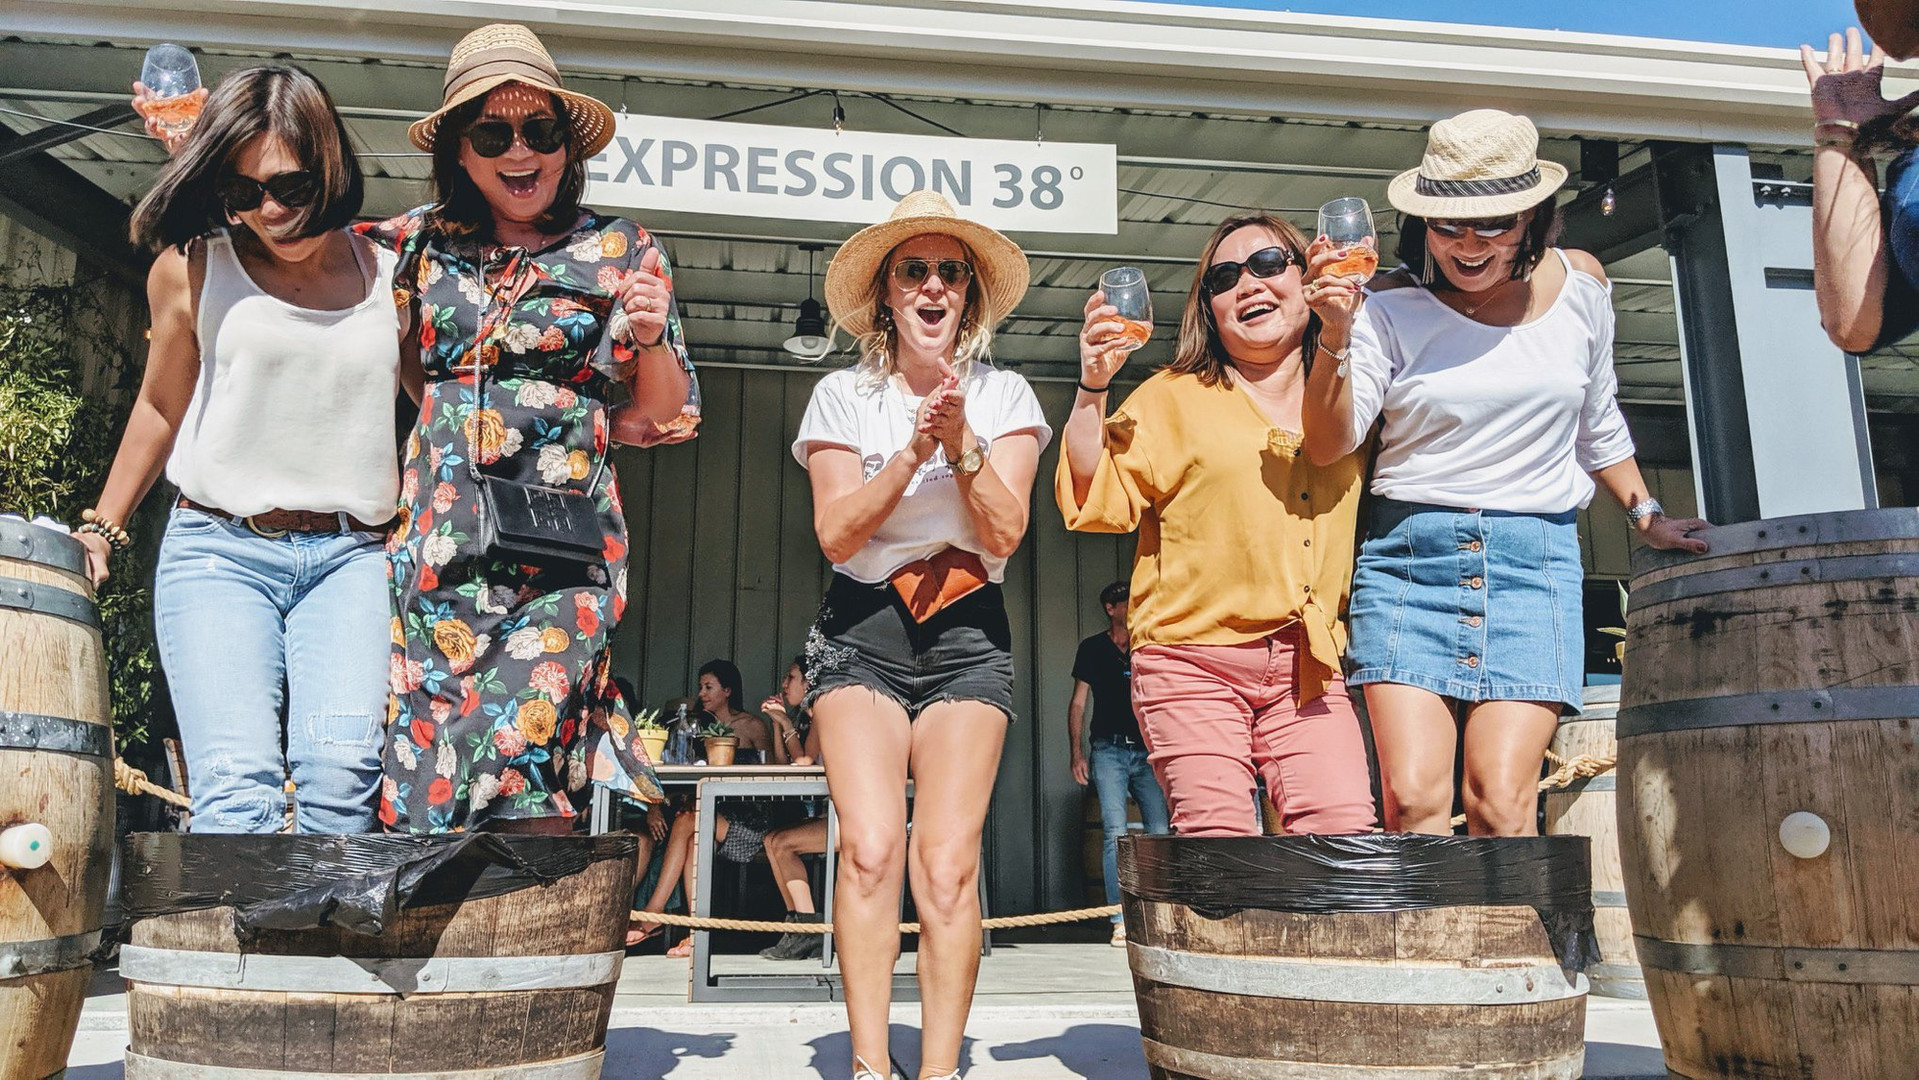 grape stoming pop-up event